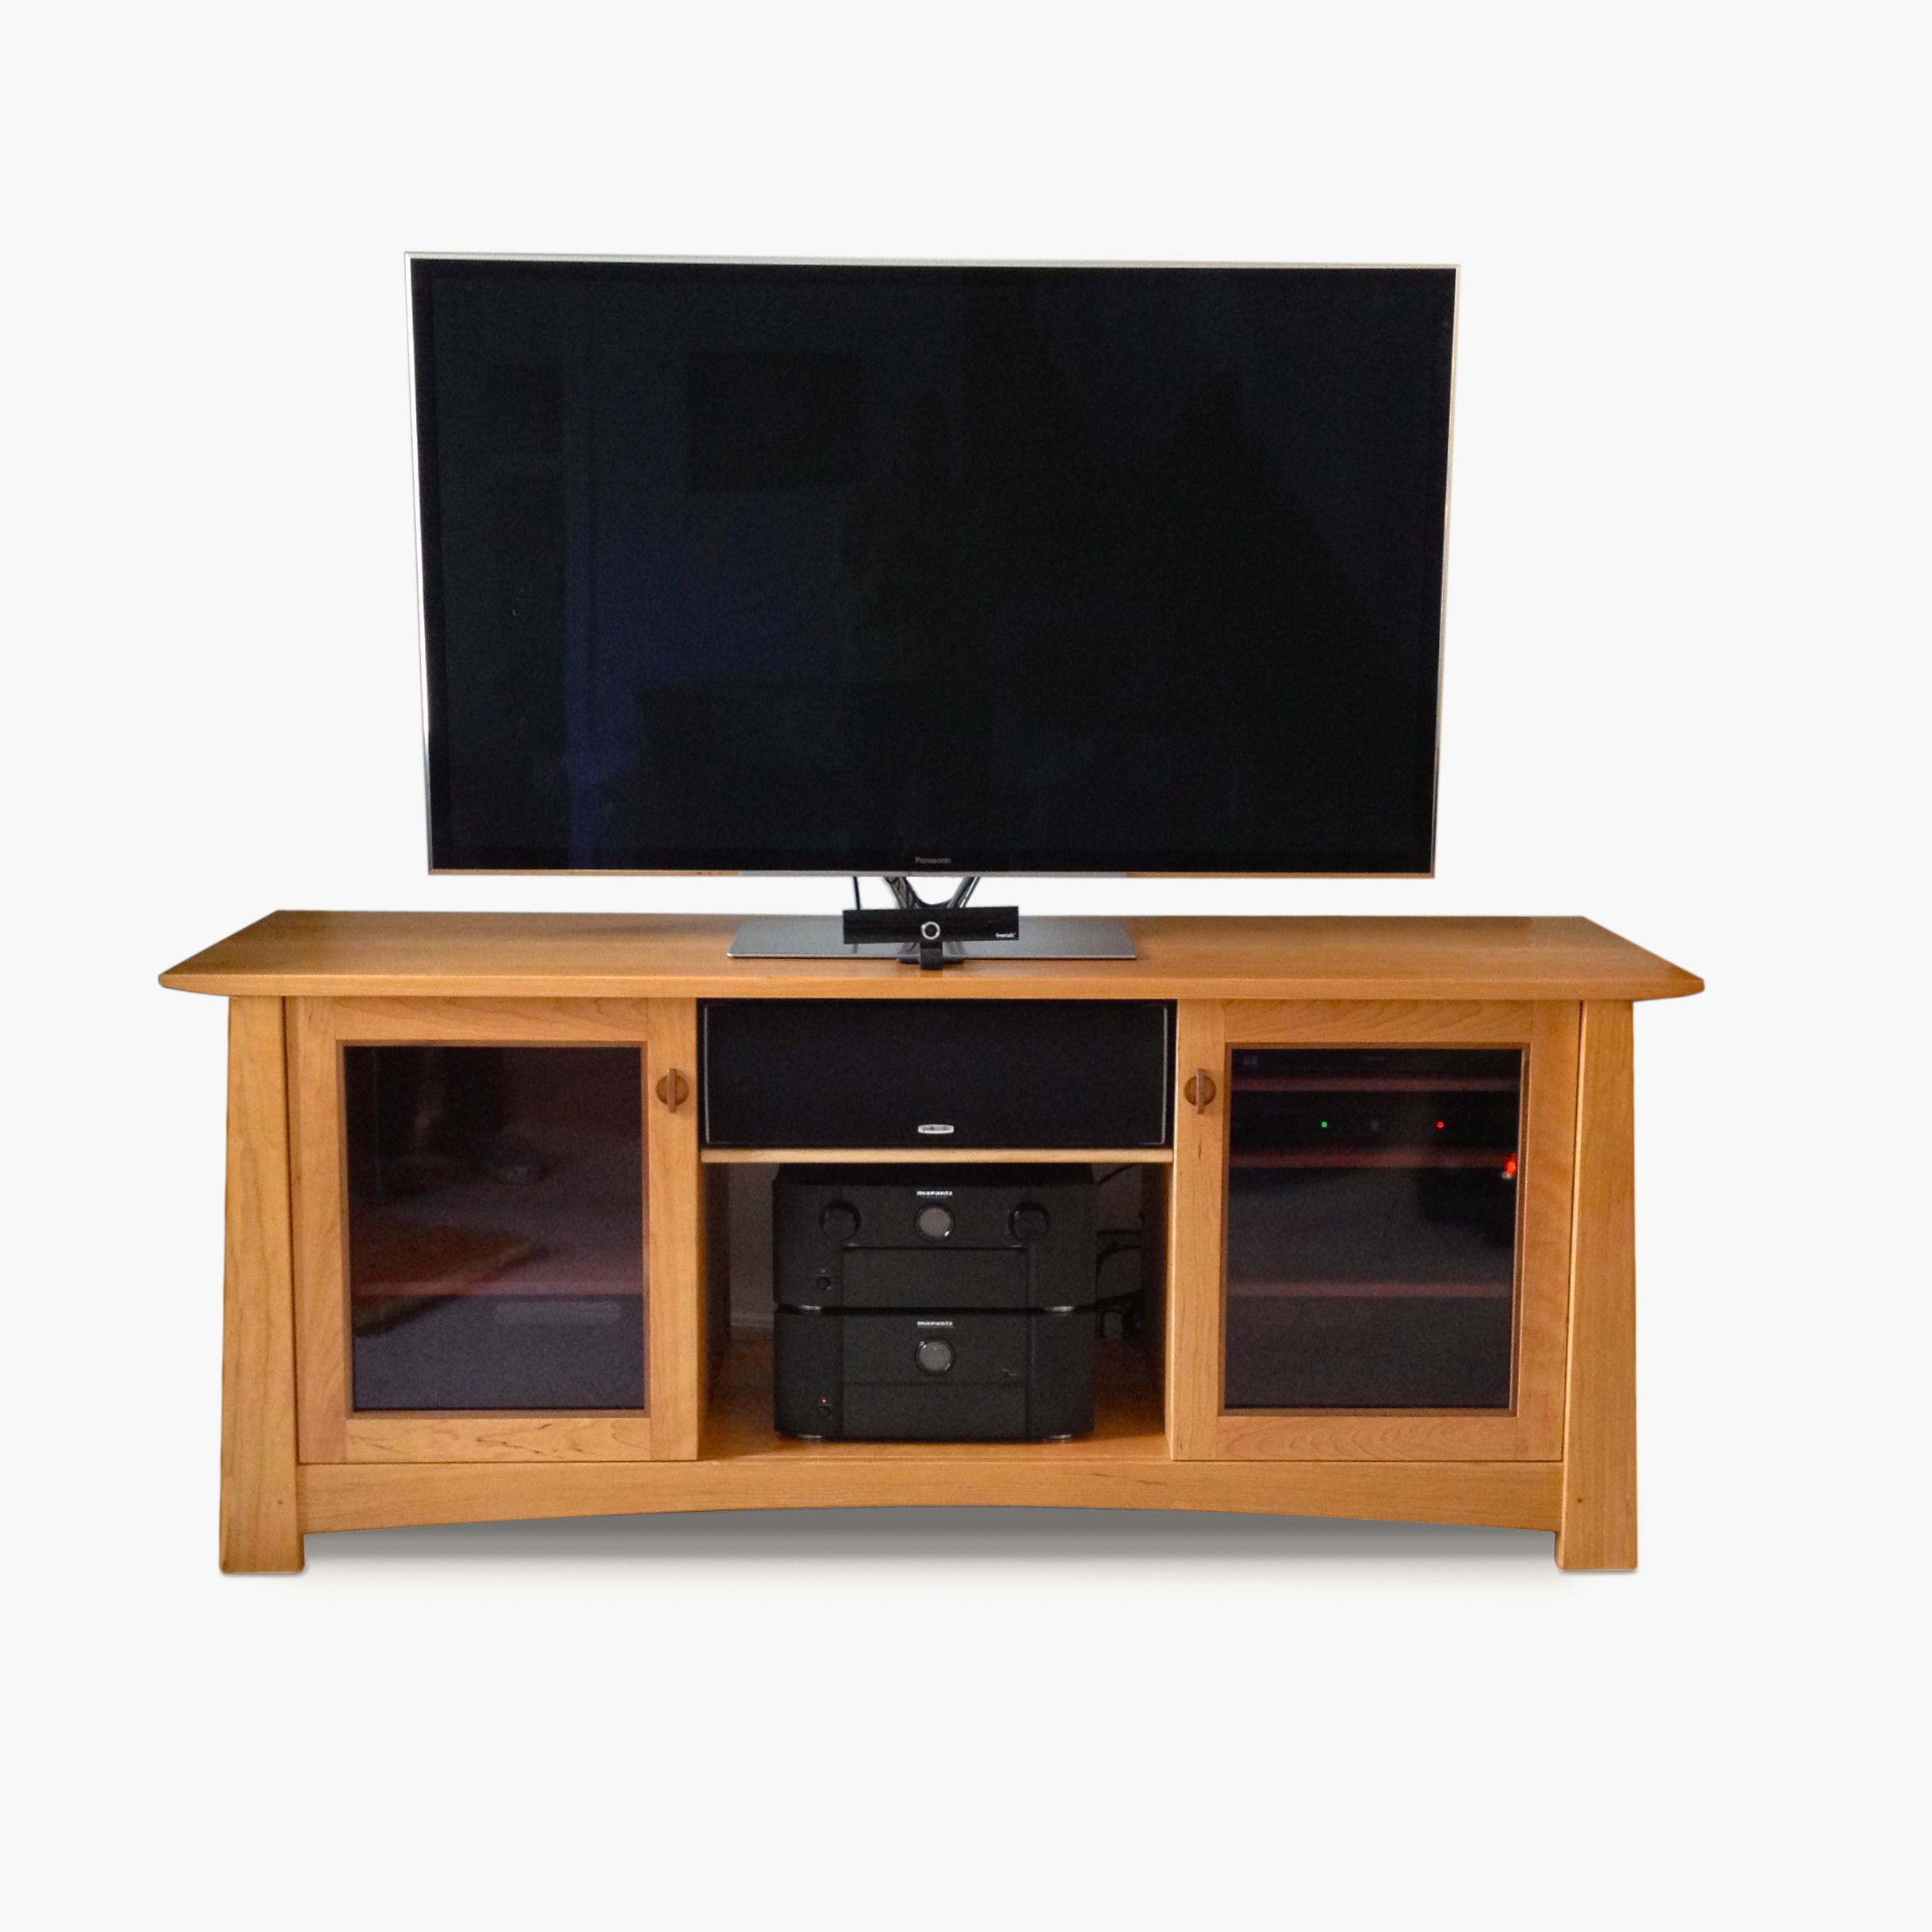 Custom Art S And Crafts Tv Stand Console Purple Moon